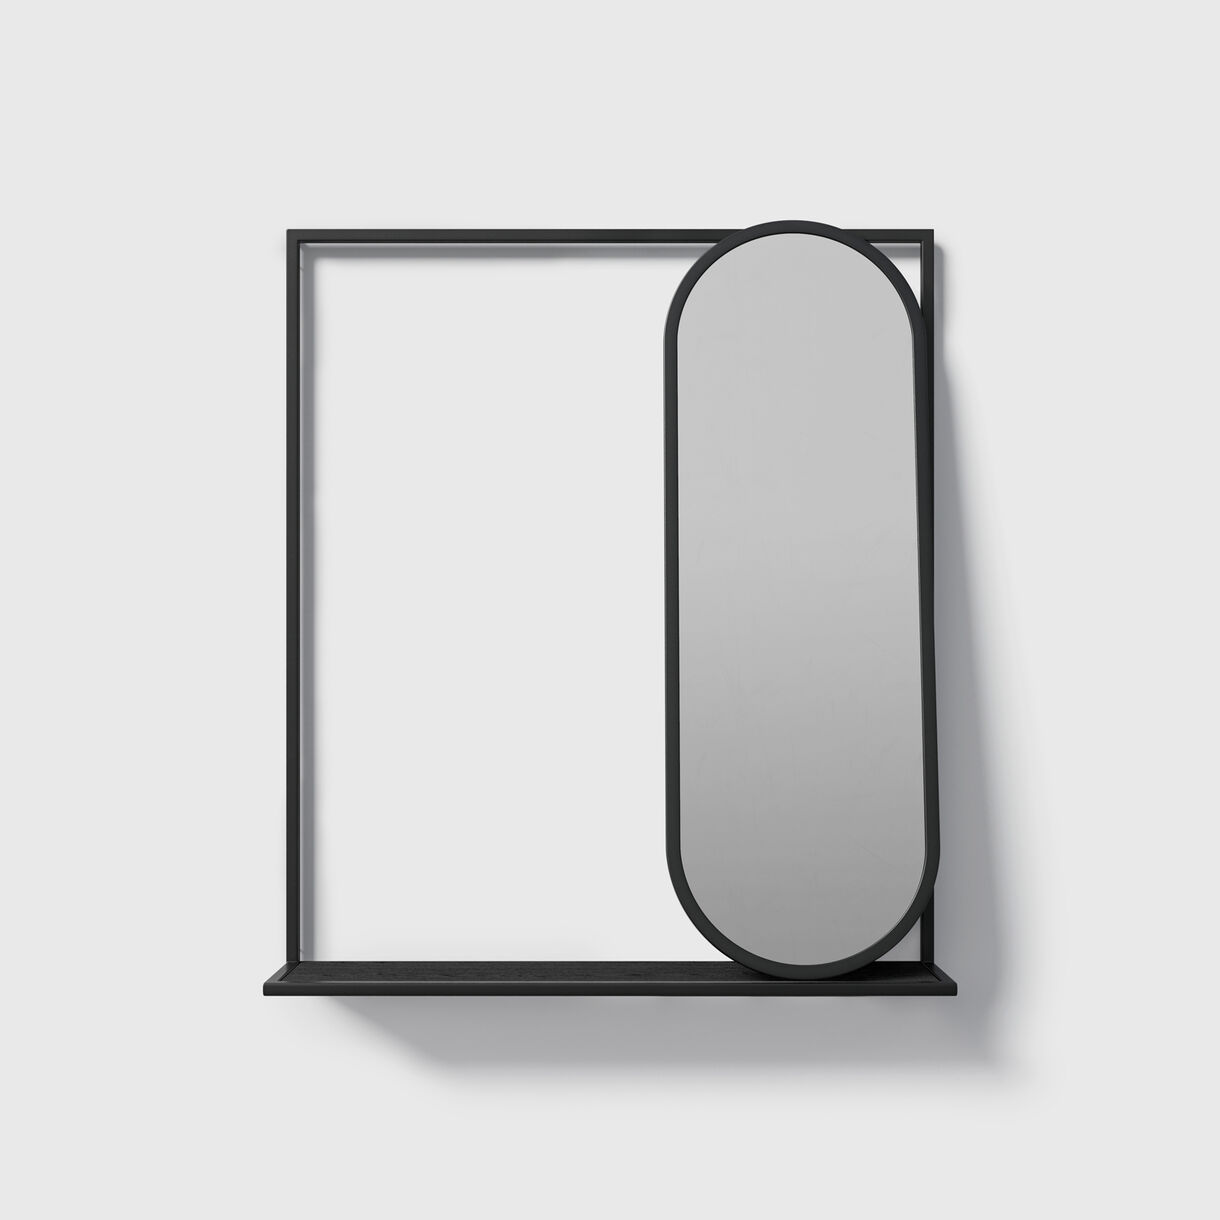 Frame Wall Mirror, Large